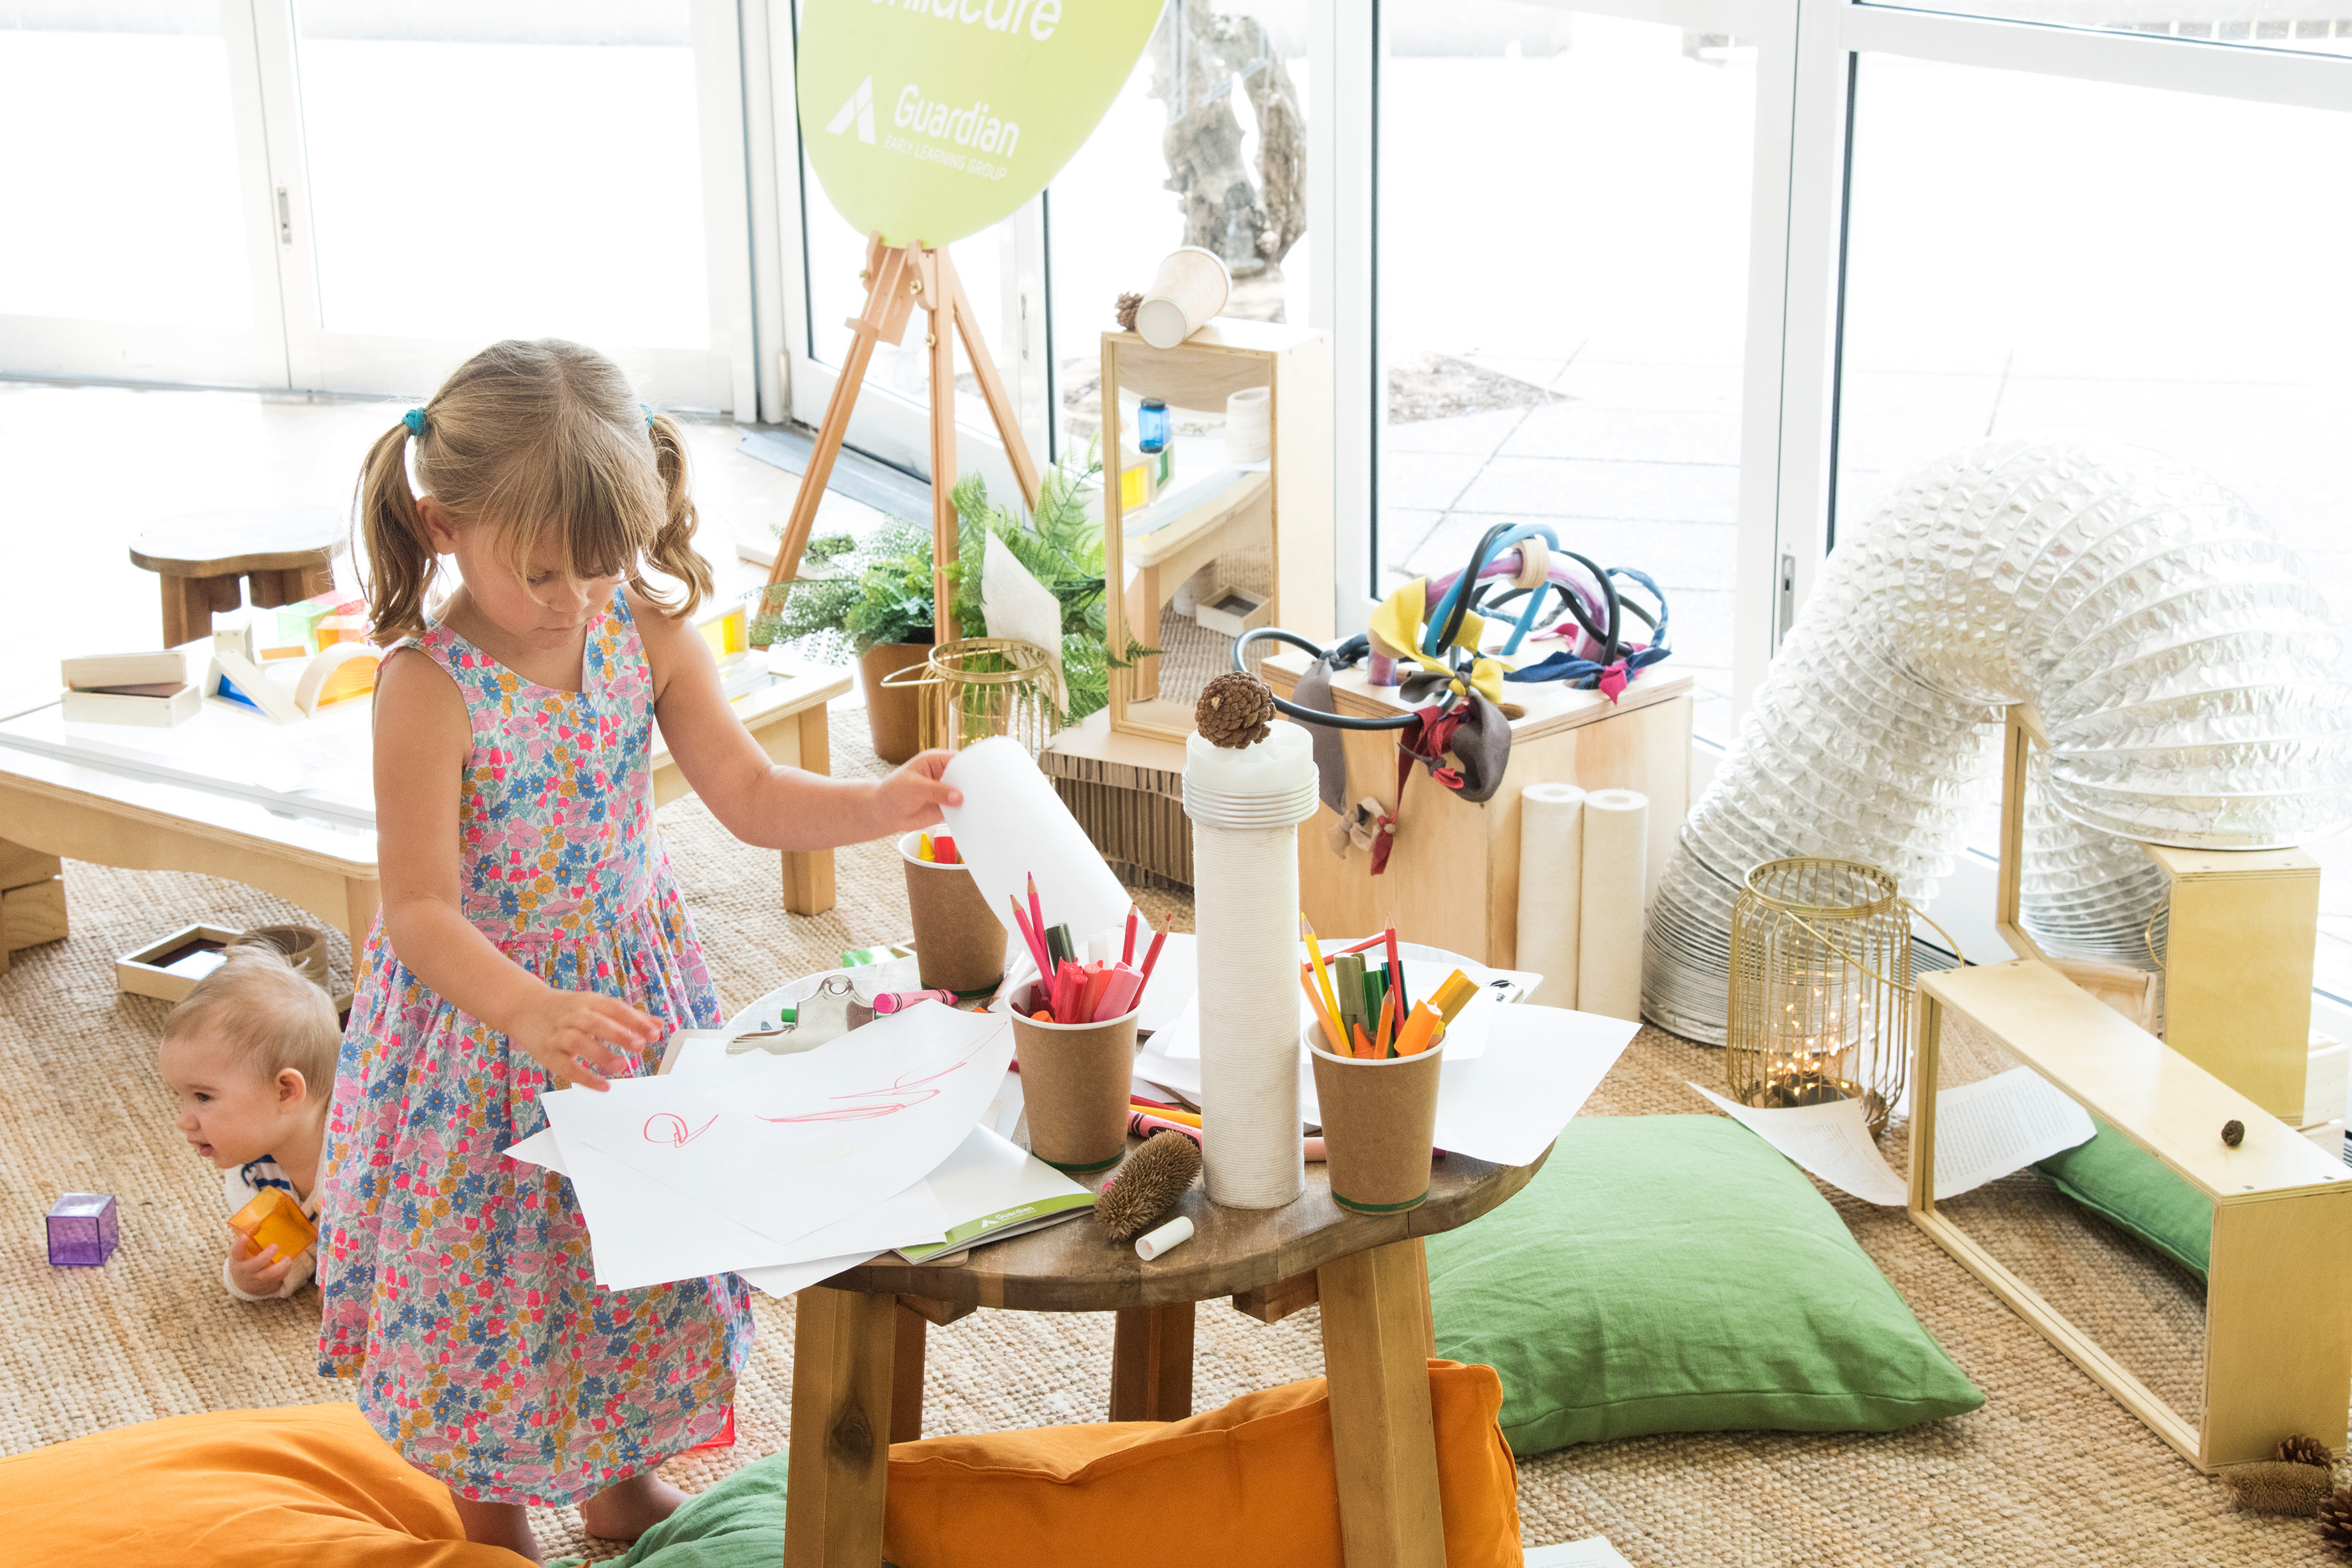 What To Do With The Children This Half-Term